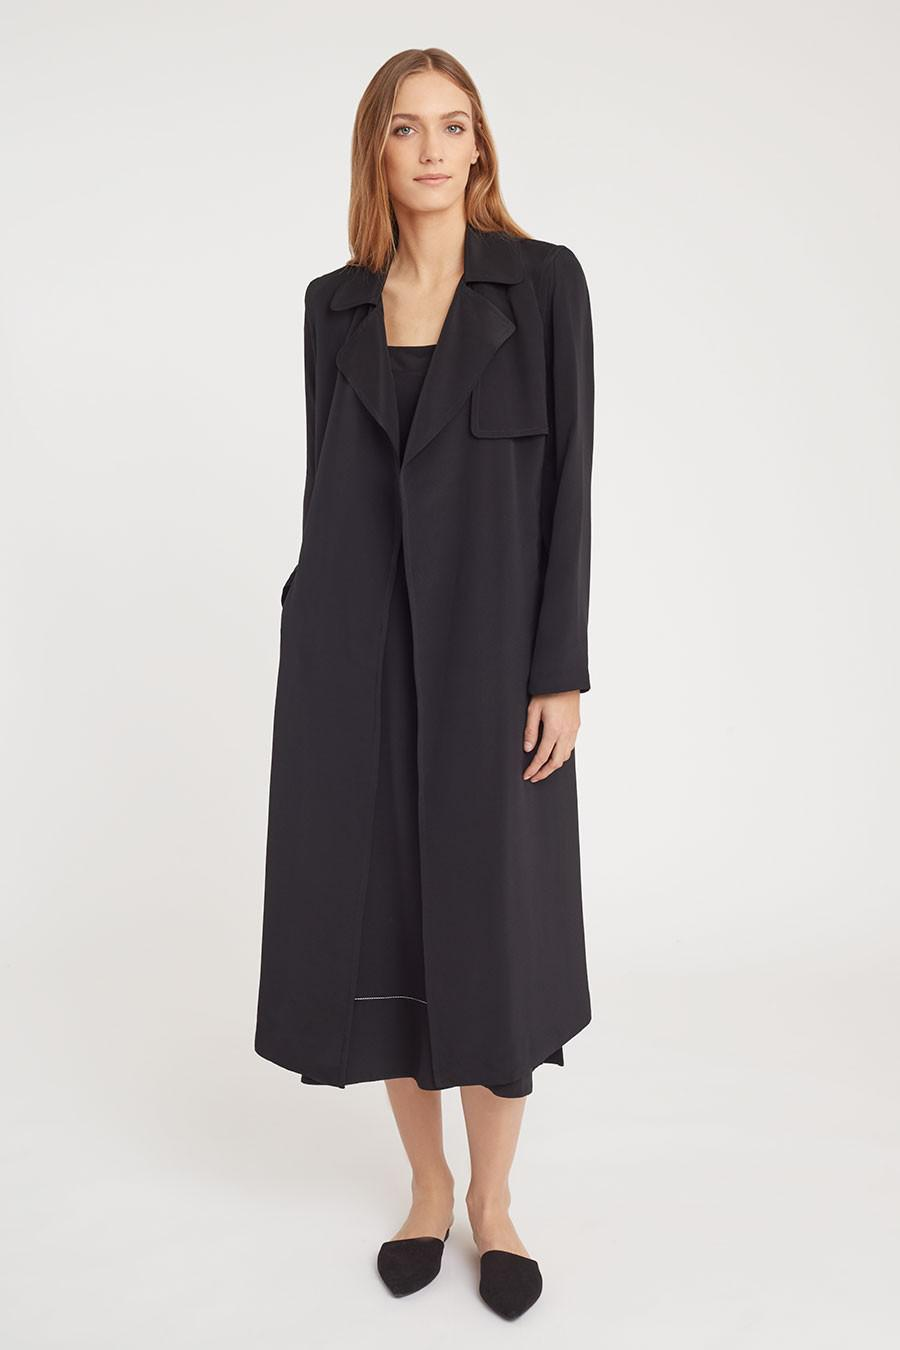 Women's Silk Classic Trench in Black | Size: 1